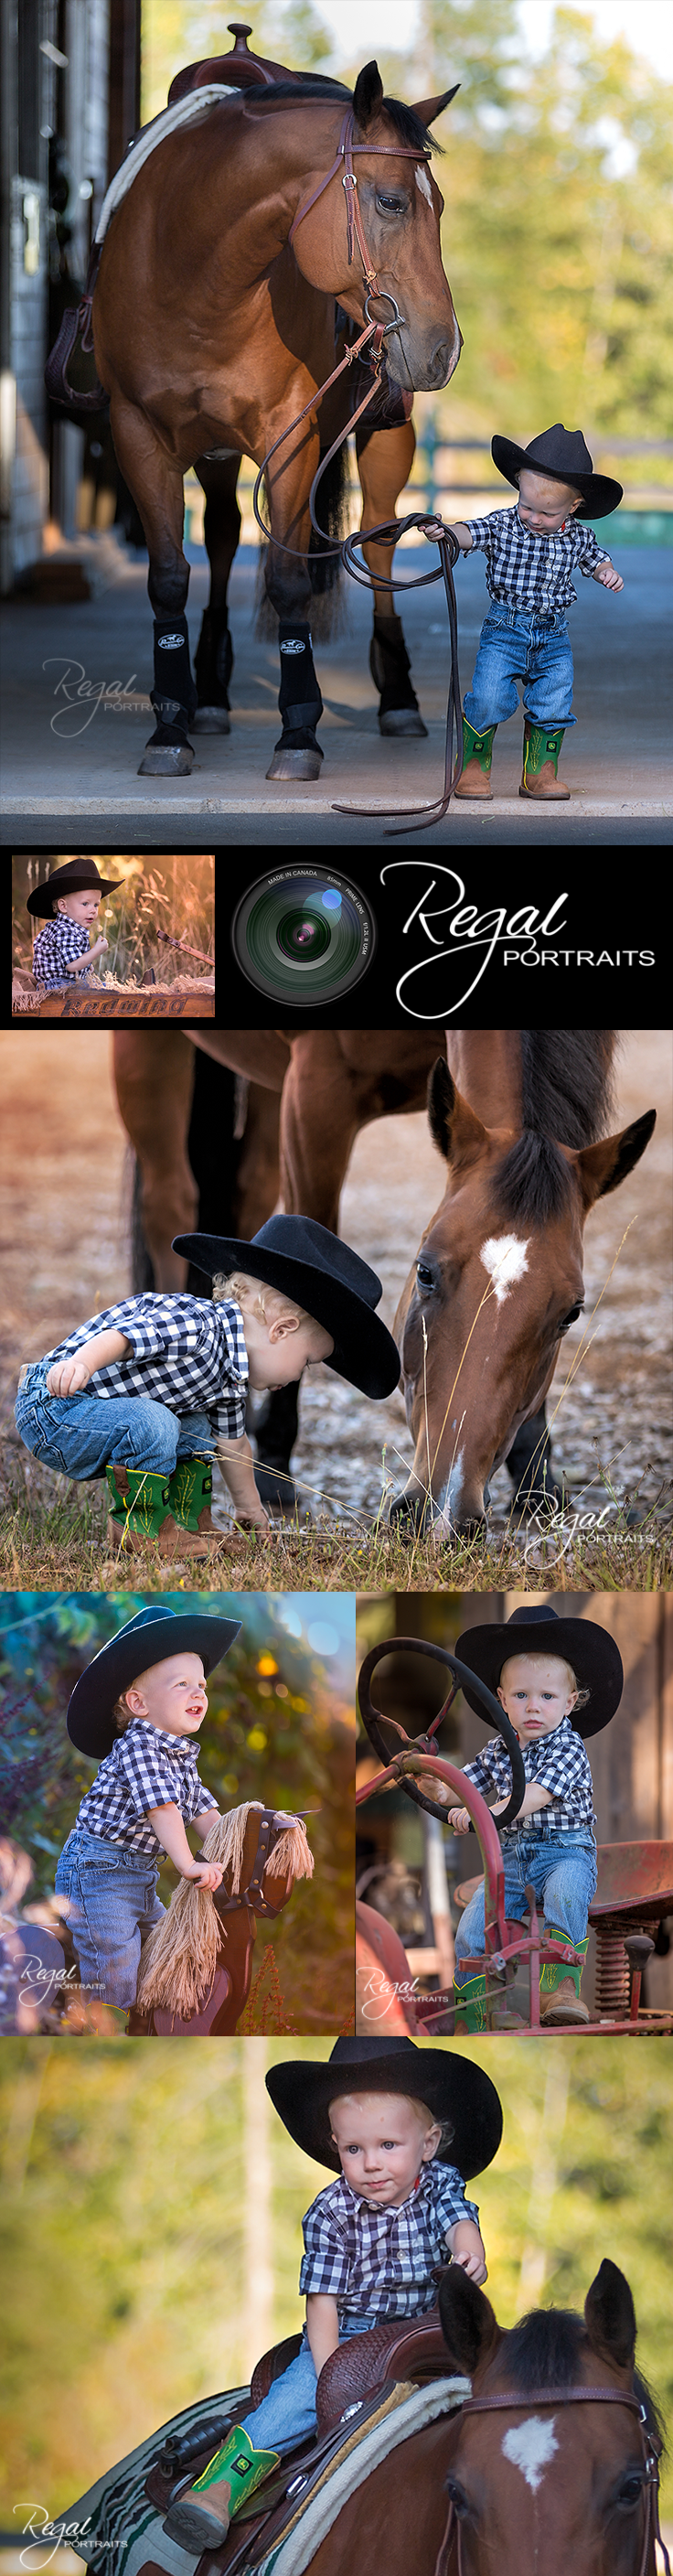 Super cute portrait of a little cowboy and his horse - Regal Portraits Photography in Victoria BC Canada